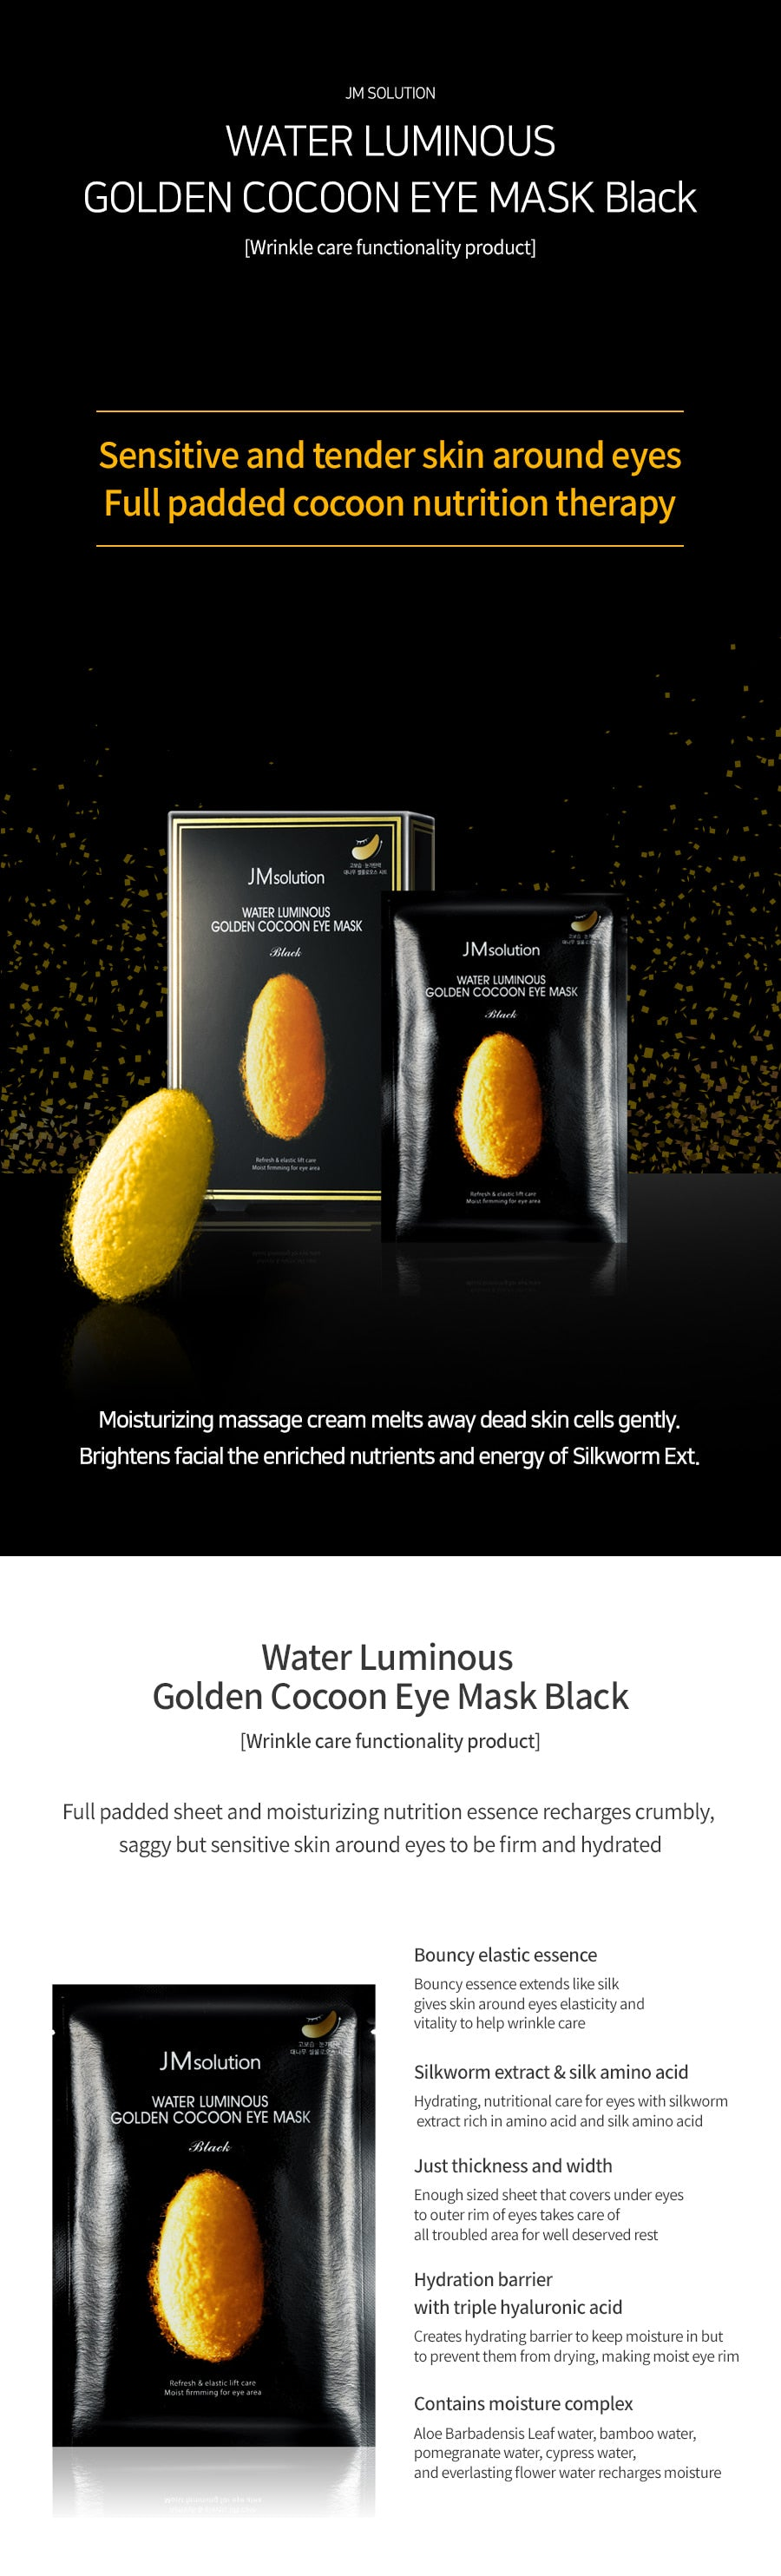 jm_solution_water_luminous_golden_cocoon_eye_mask-1_1.jpg